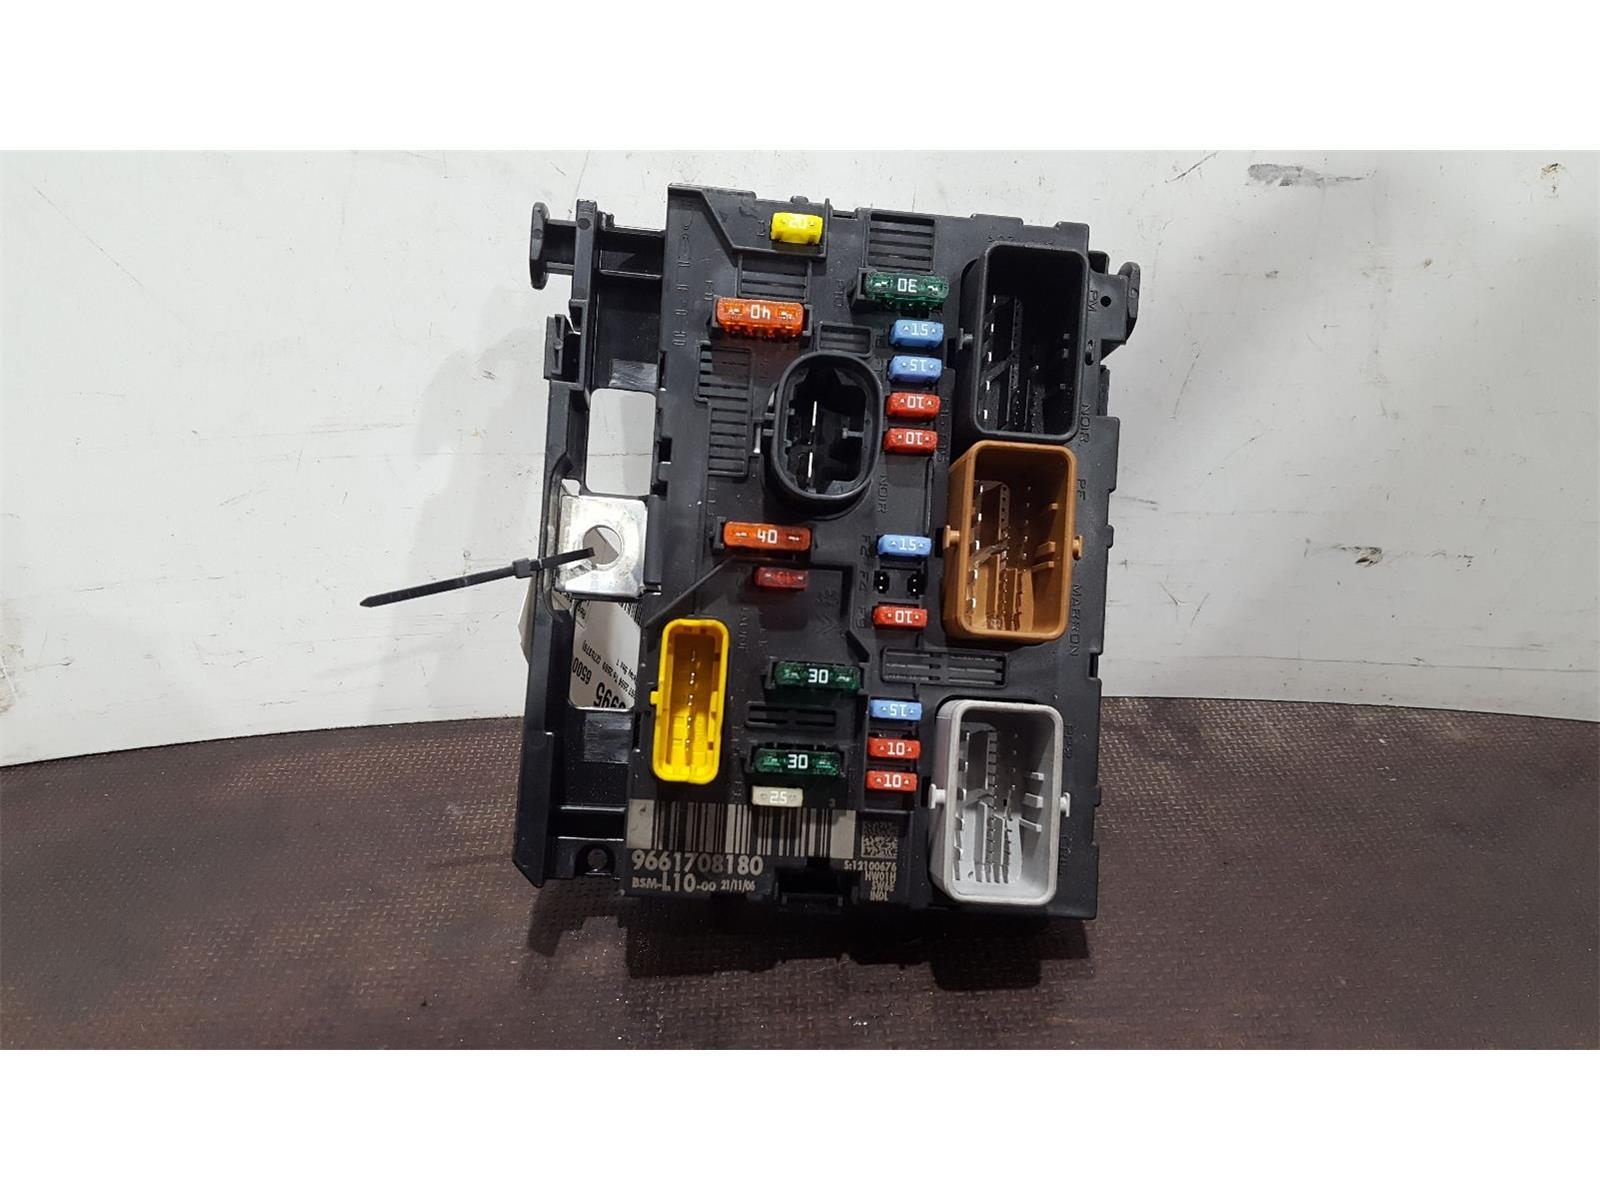 hight resolution of peugeot 207 2006 to 2009 s hdi fuse and relay box 1 used and spare dodge journey fuse box peugeot 207 fuse box